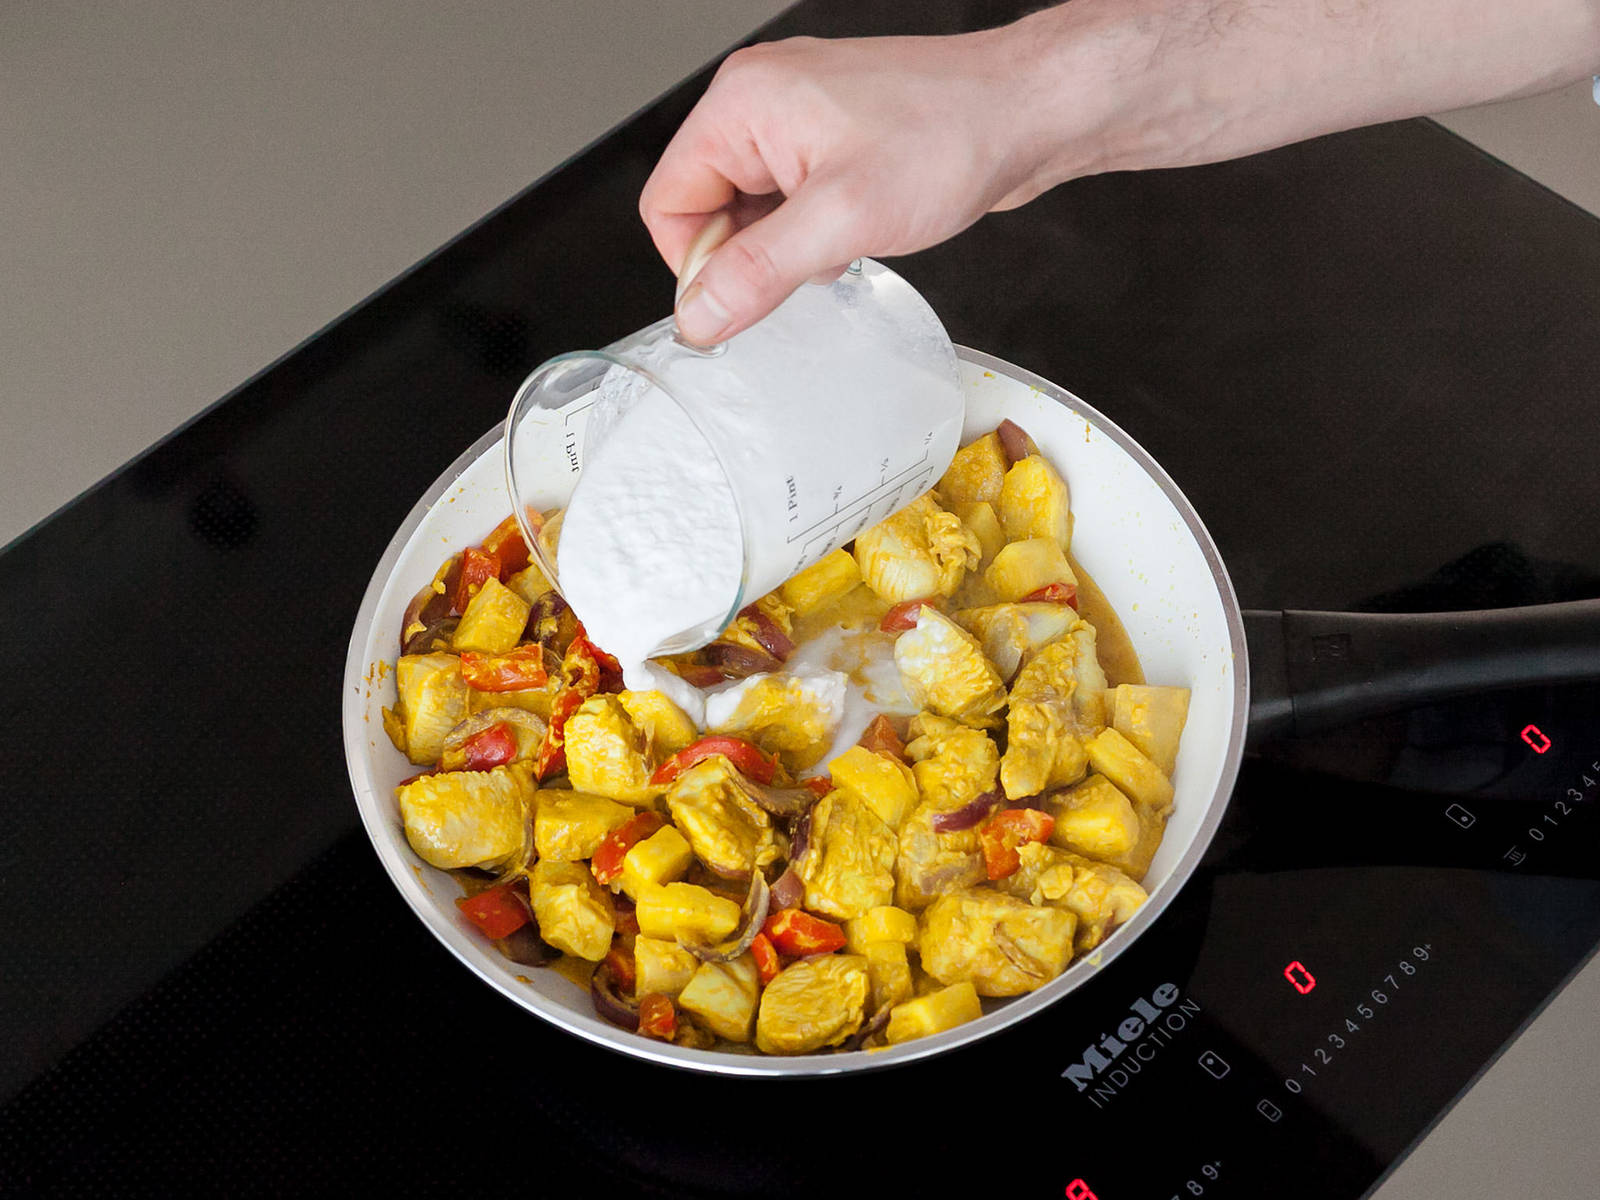 Add pineapple, coconut milk, remaining marinade, and chopped cashews to the pan and let simmer, covered, over medium-low heat for approx. 10 min. Stir occasionally. Season with salt, chili flakes, and lime juice to taste and garnish with cilantro and fried onions. Serve with rice and enjoy!